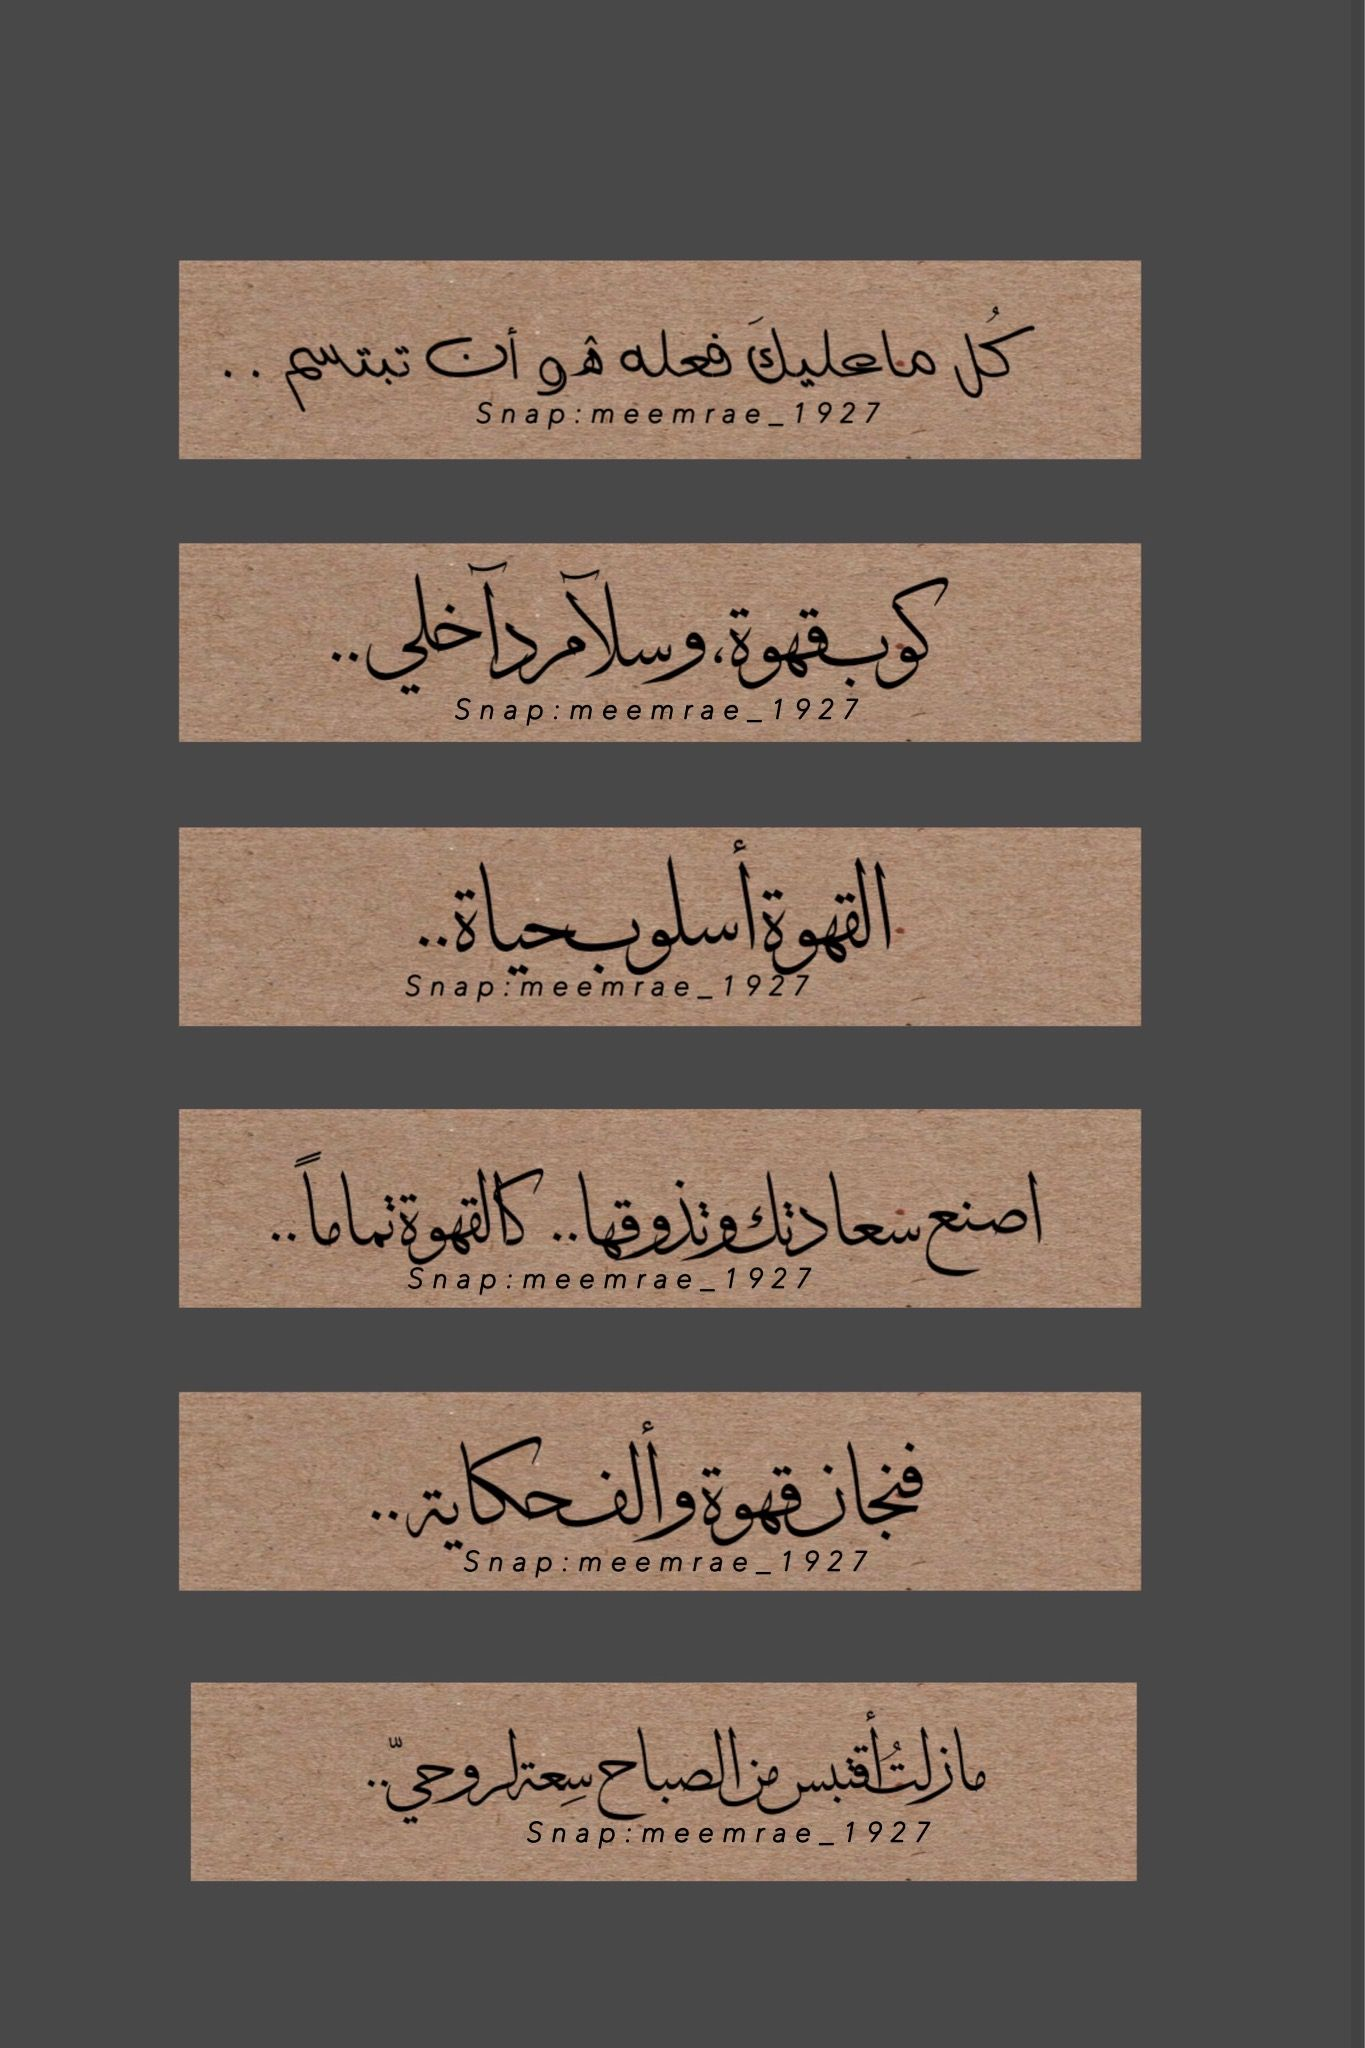 Pin By Shraa Zafer On اقتباسات هيدرات ميم Calligraphy Quotes Love Iphone Wallpaper Quotes Love Instagram Picture Quotes